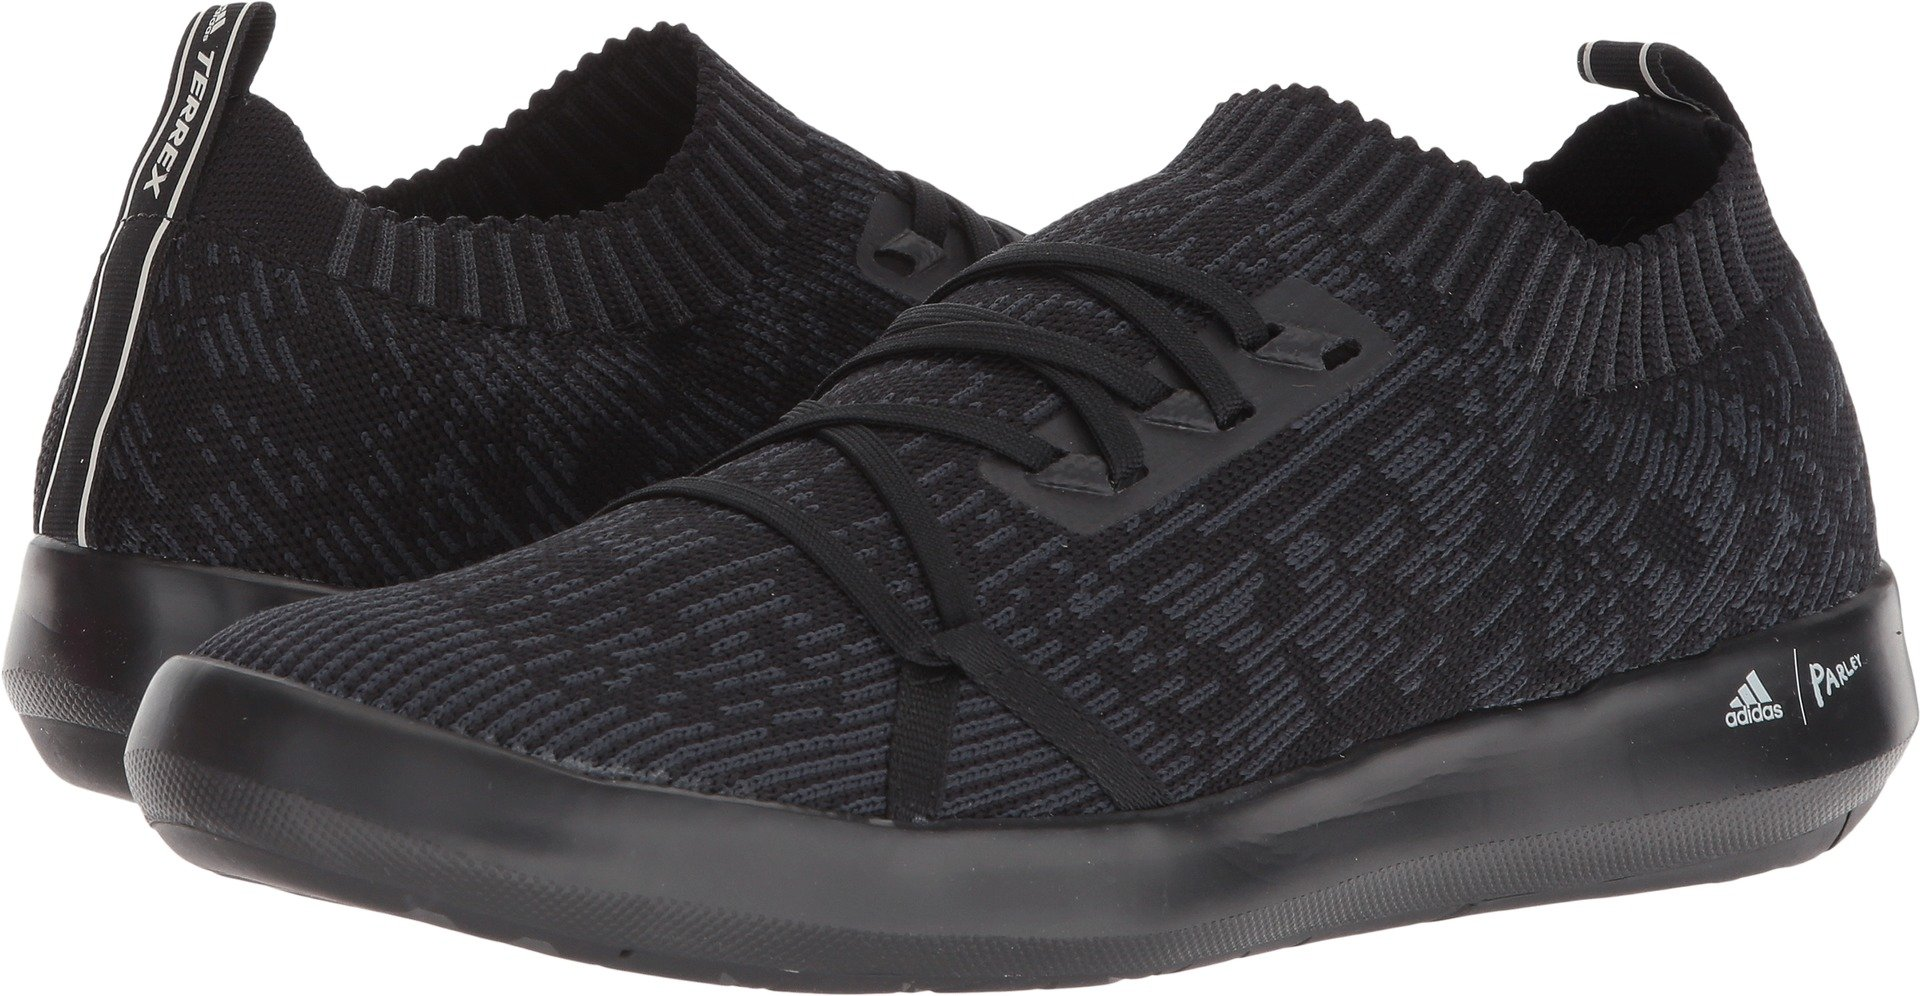 adidas outdoor Mens Terrex Boat DLX parley Shoe (10.5 - Black/Carbon/chalk